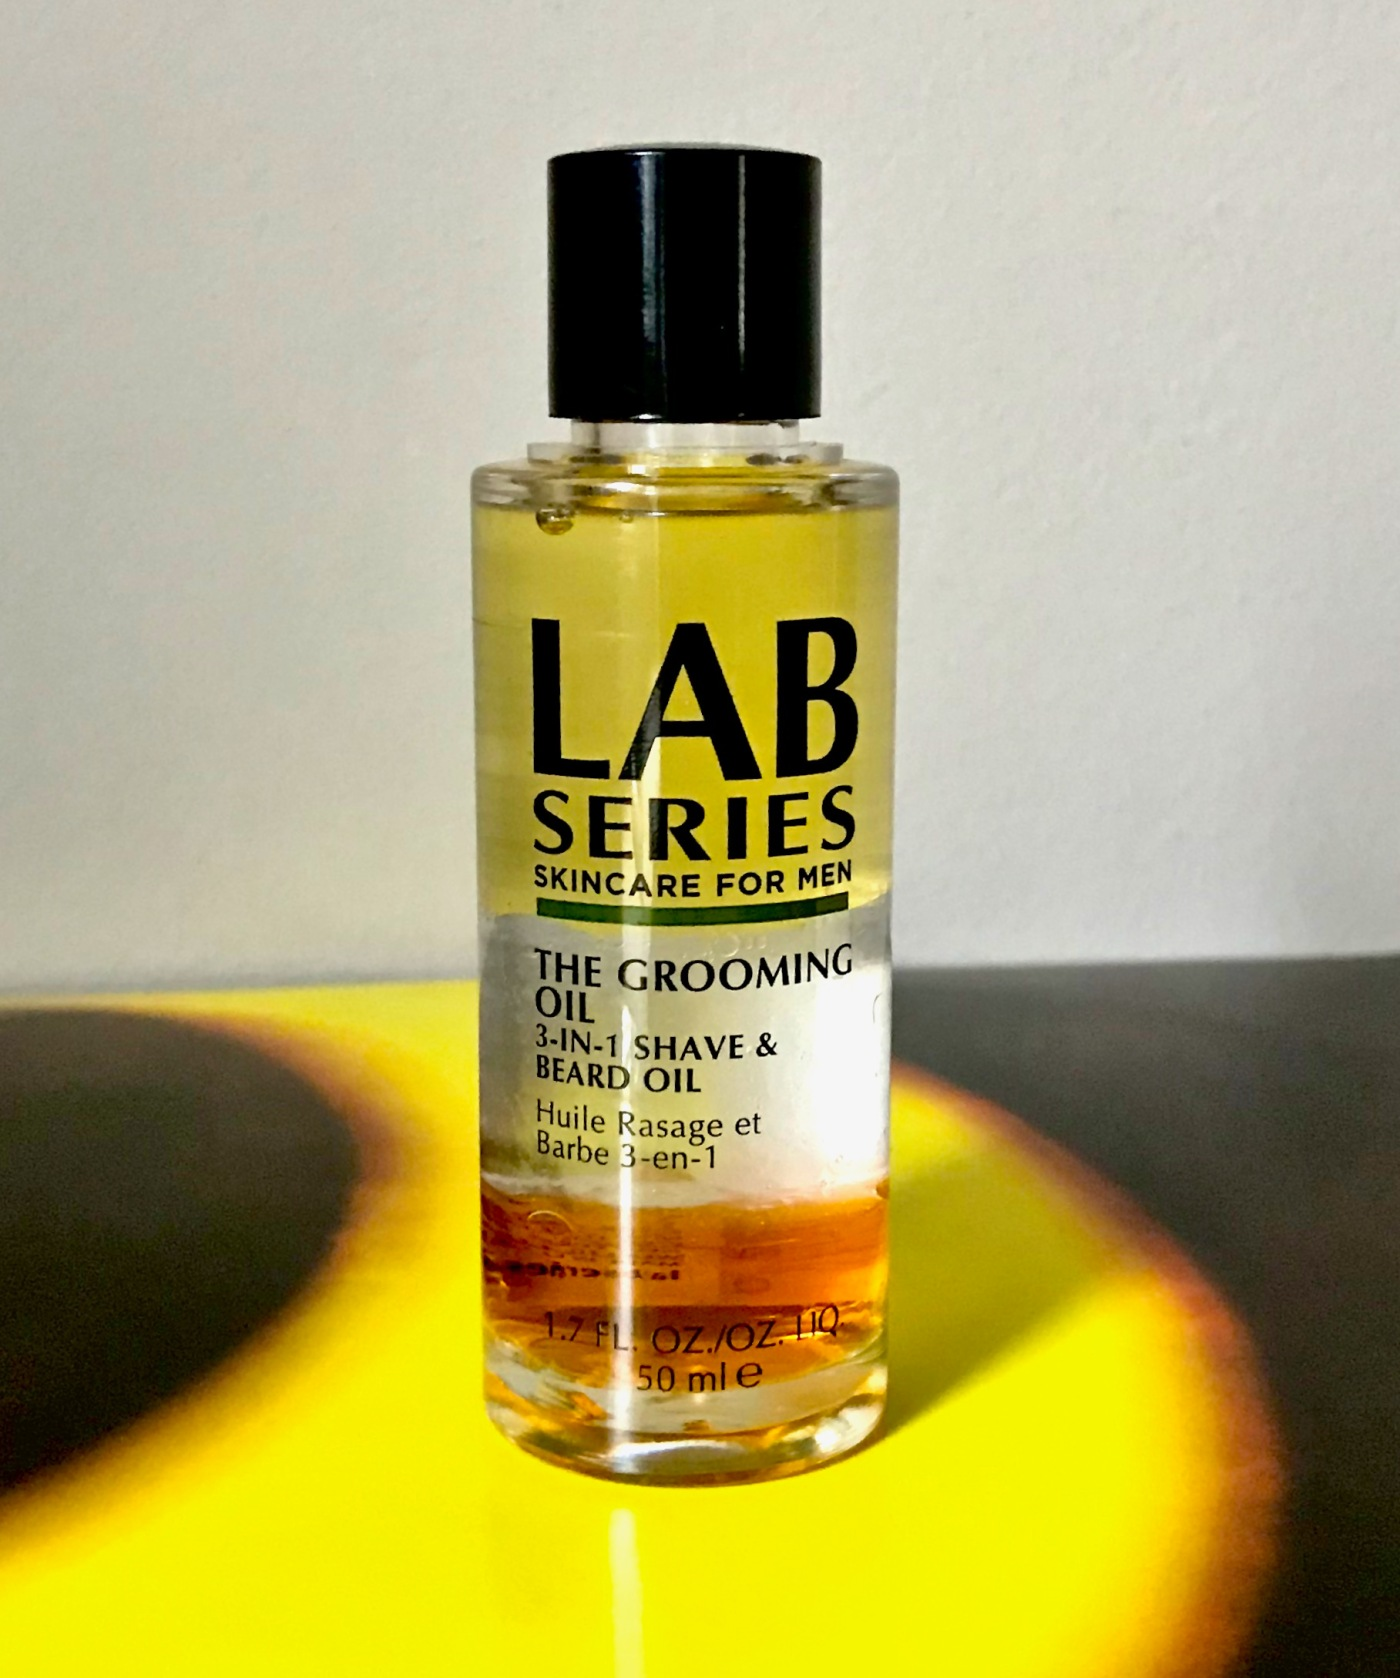 Lab Series launch multifunctional Grooming Oil – The